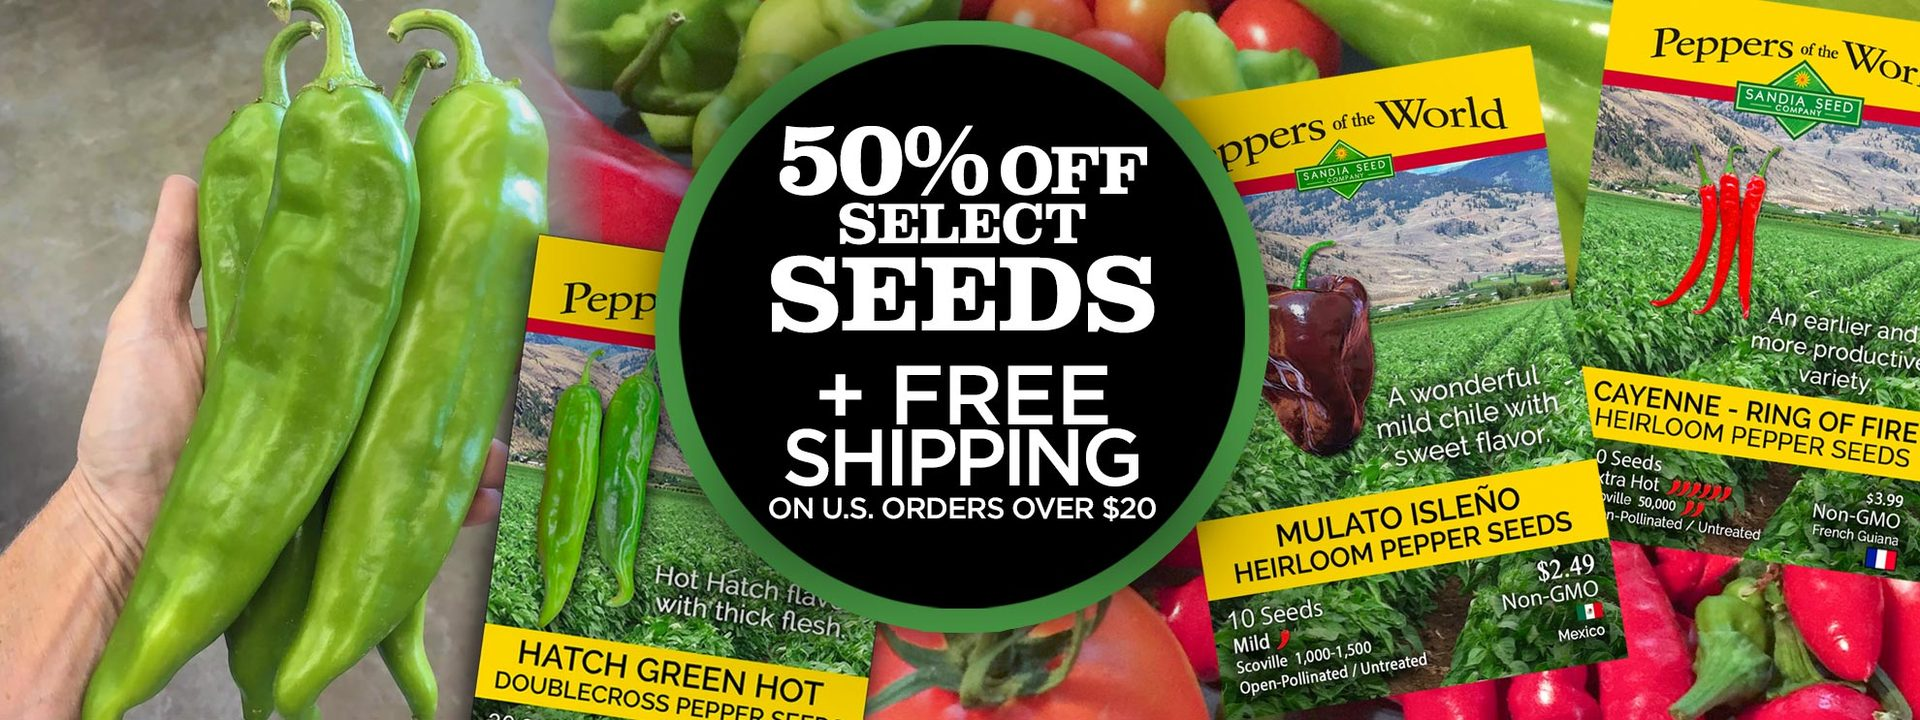 Chefs Pepper Seeds 3-Pack